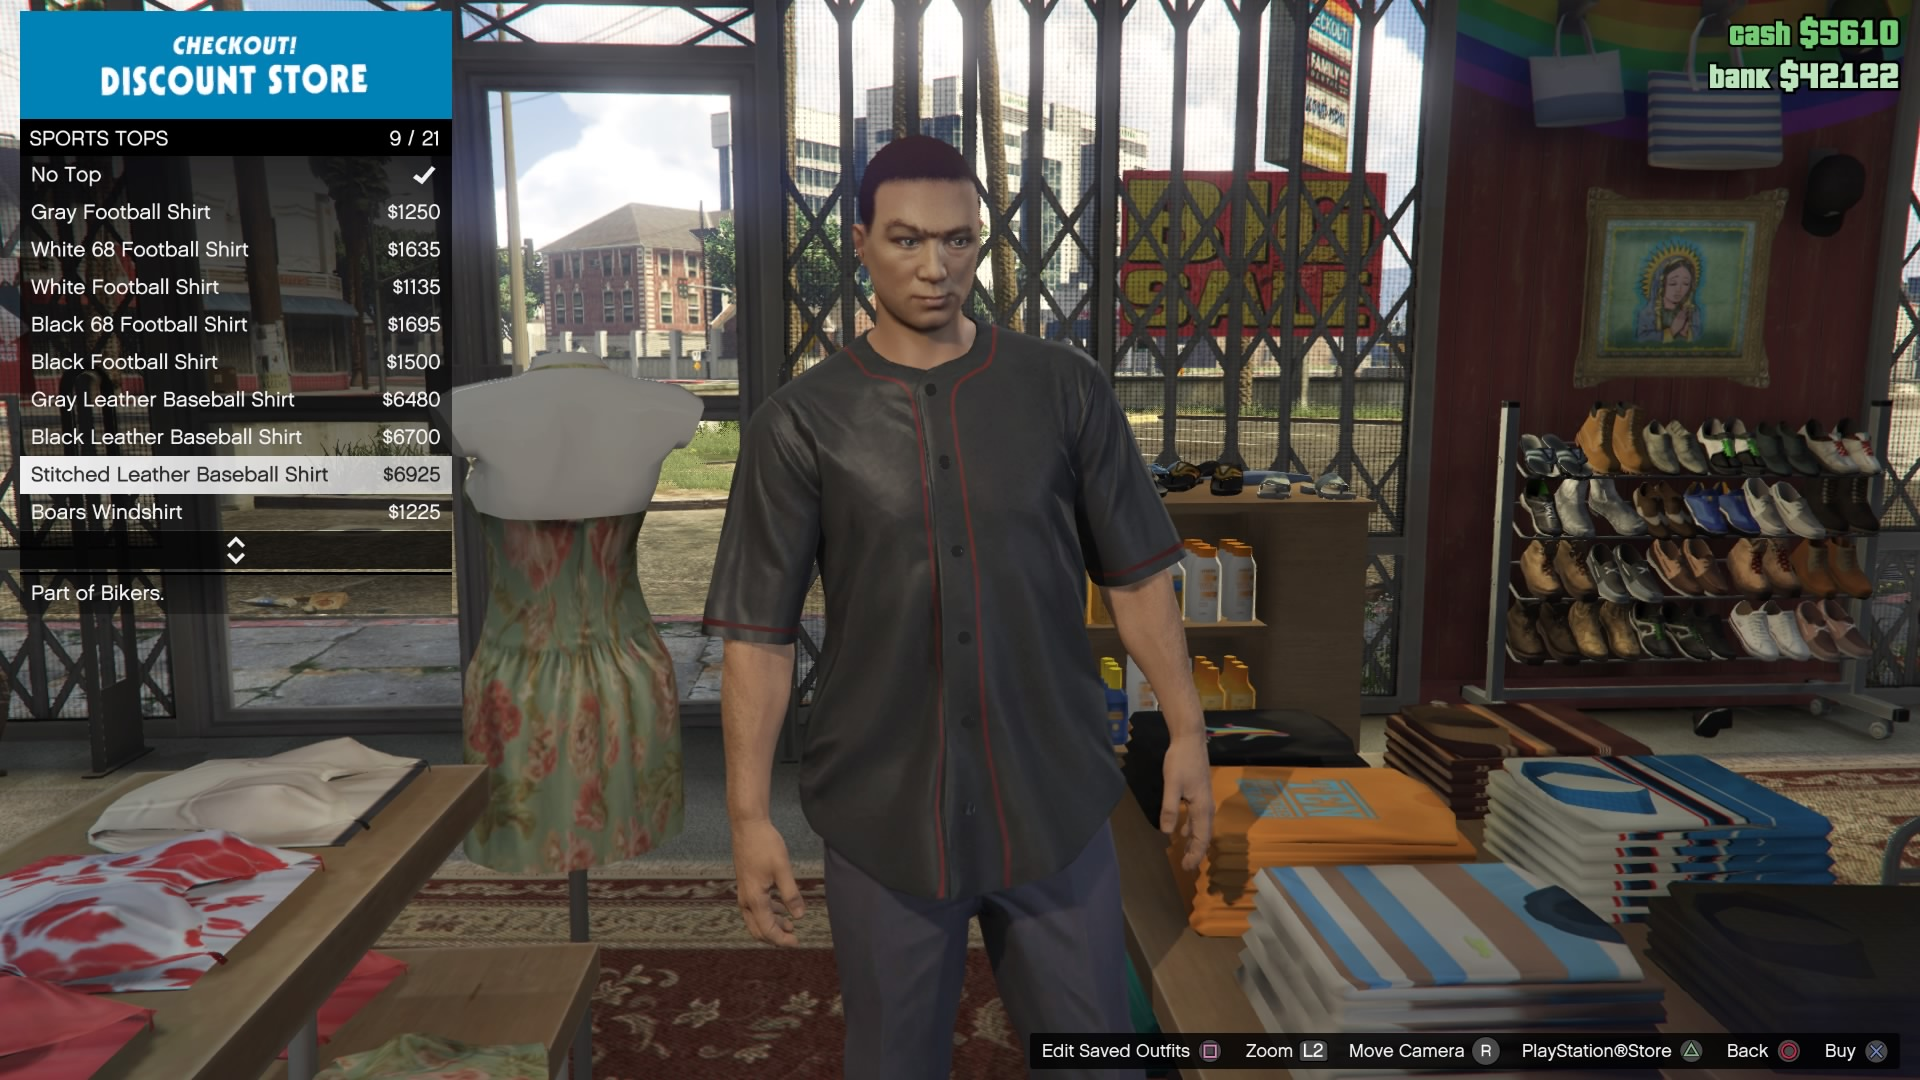 GTA Online Stitched Leather